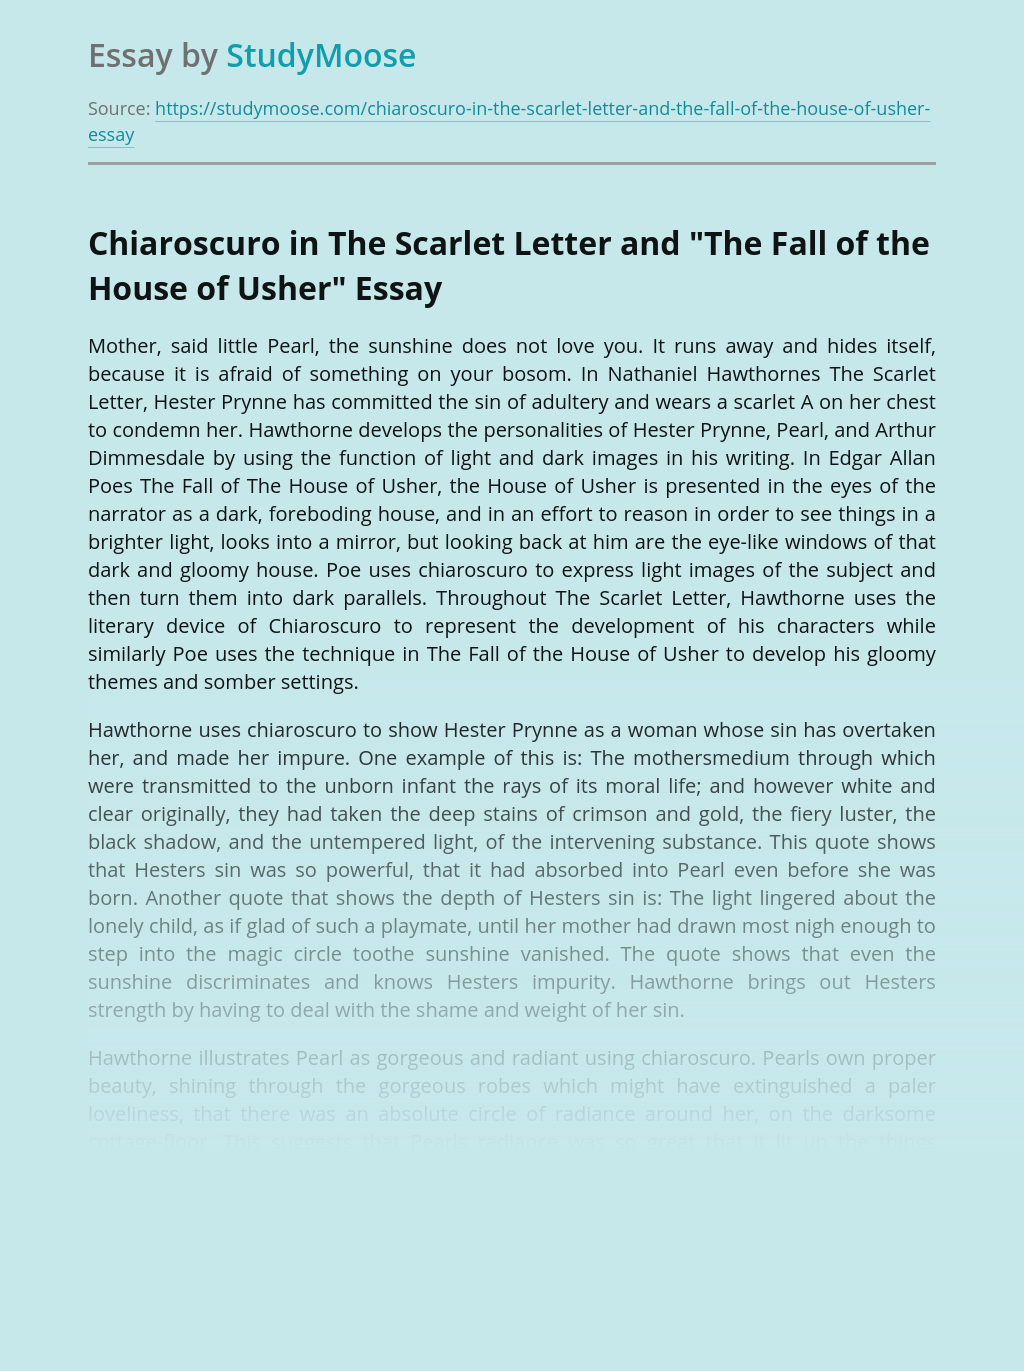 """Chiaroscuro in The Scarlet Letter and """"The Fall of the House of Usher"""""""